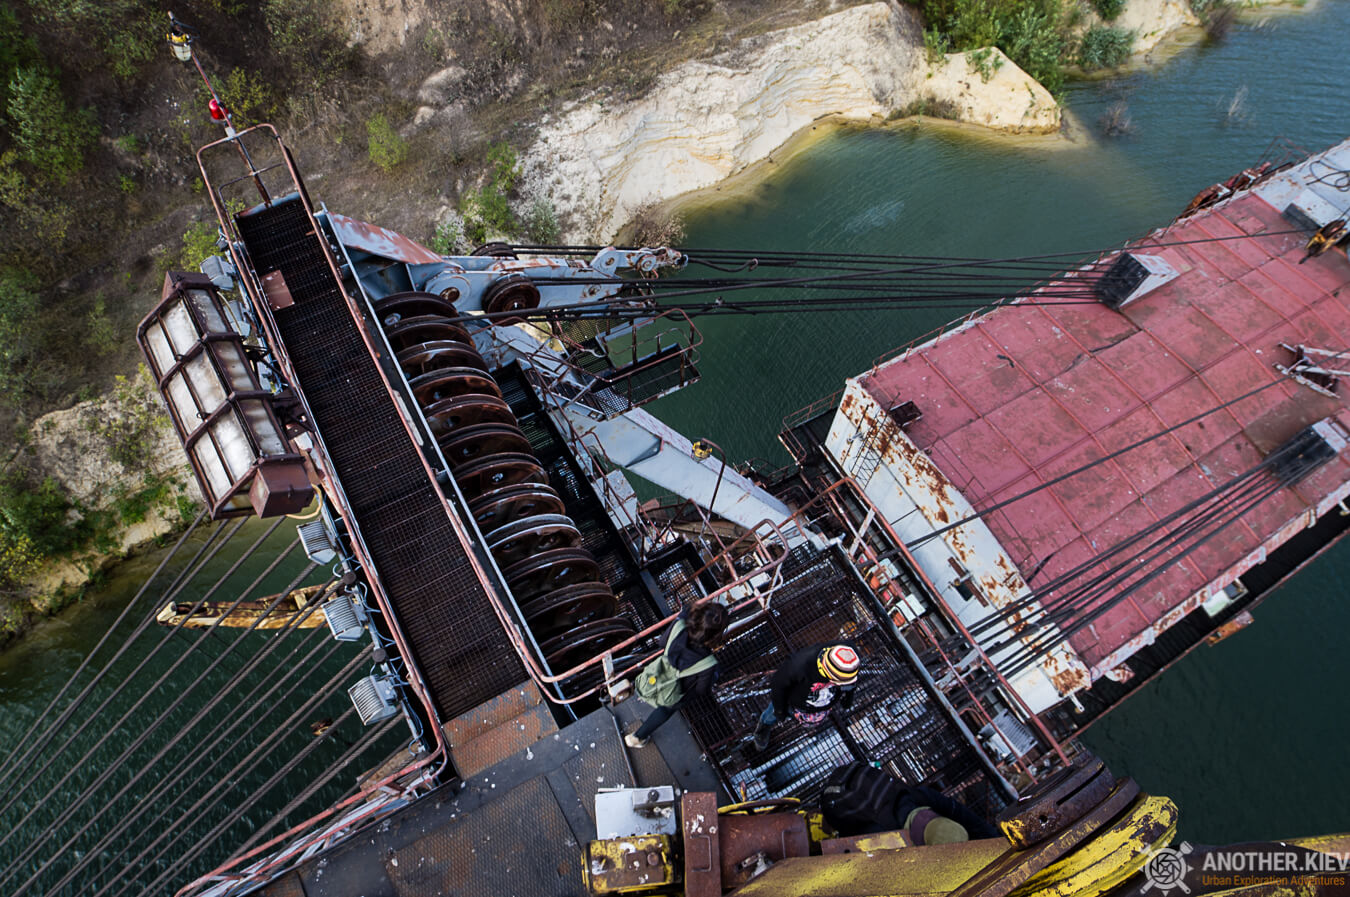 view from the top of flooded abandoned open mining digger